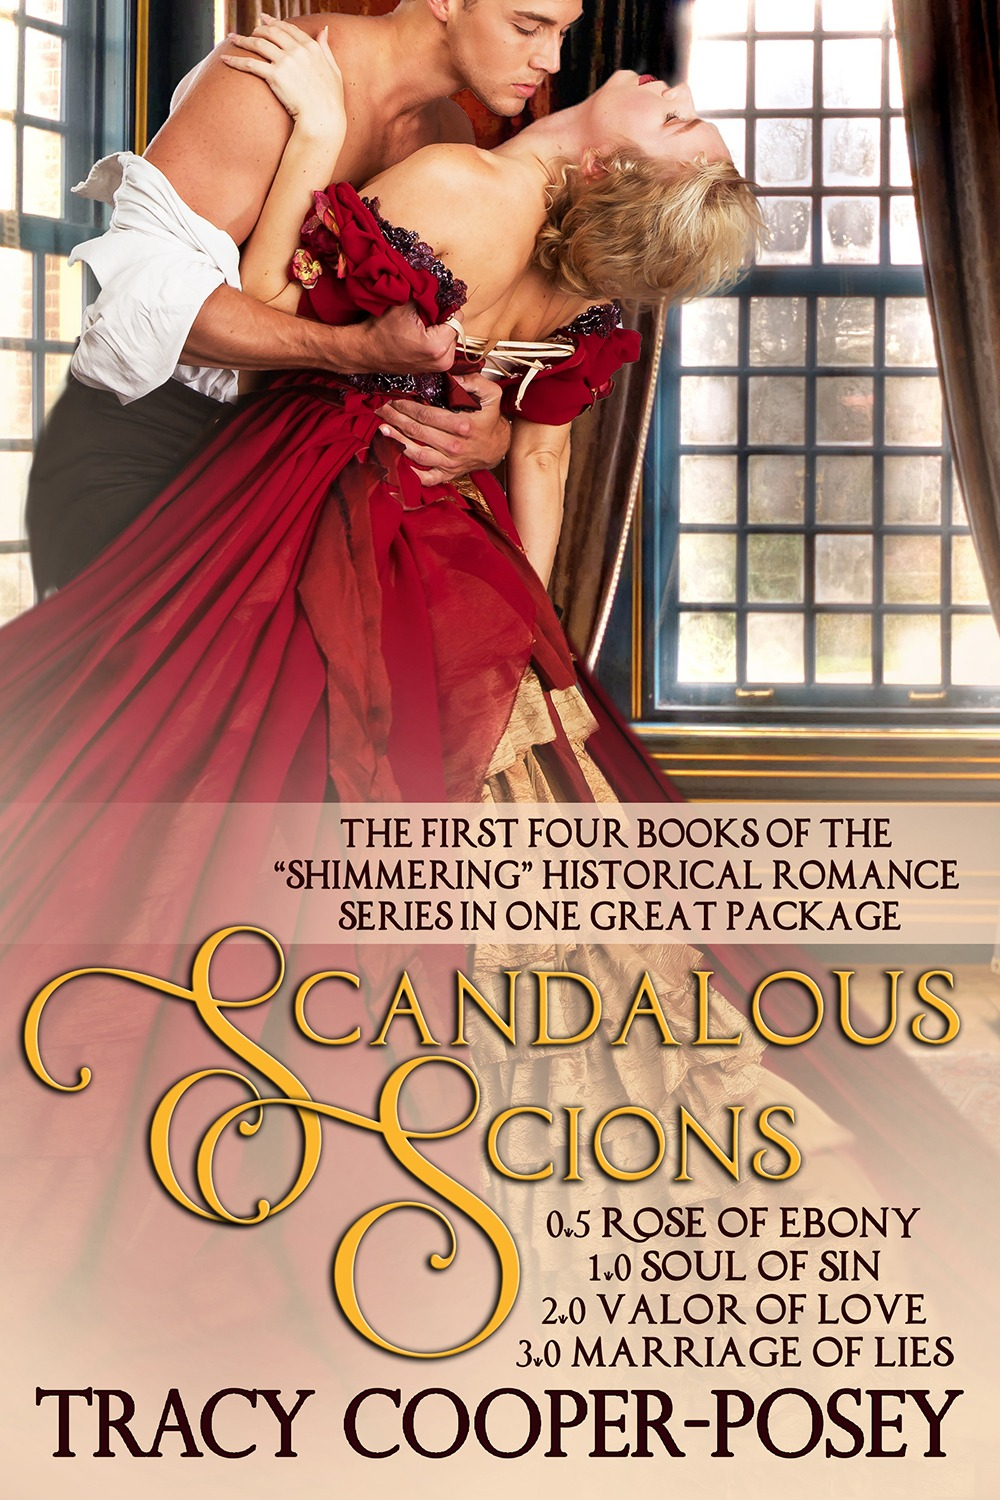 Victorian Era Historical Romance Boxed Set Now Available!